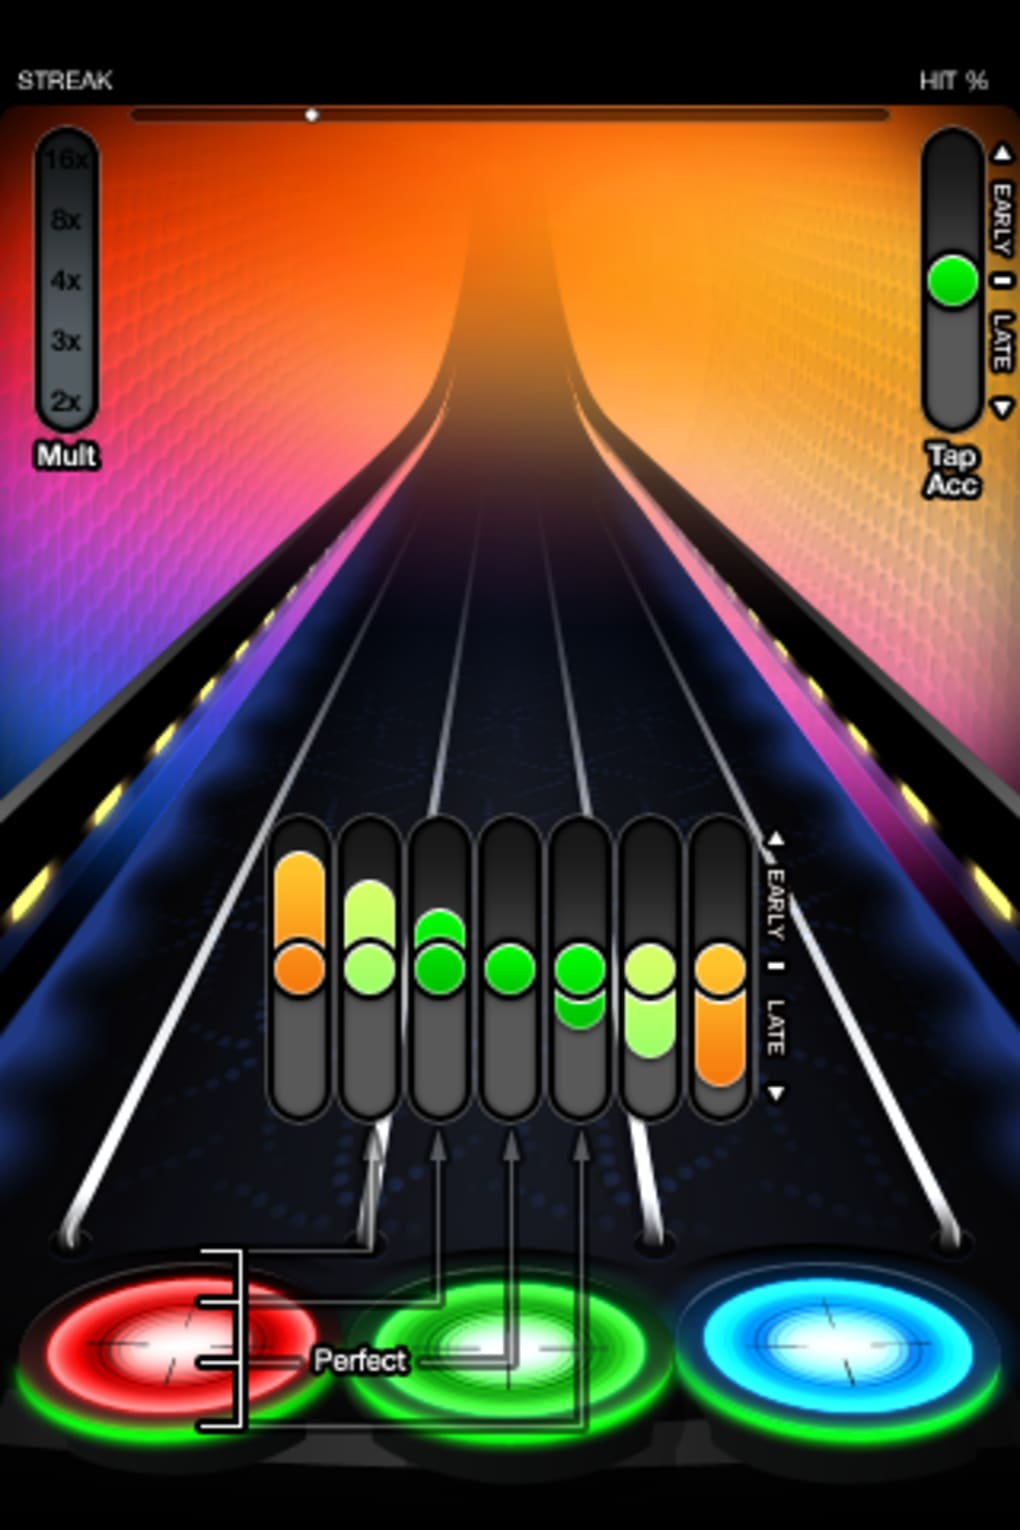 Tap tap revenge 4 released as free download on itunes.